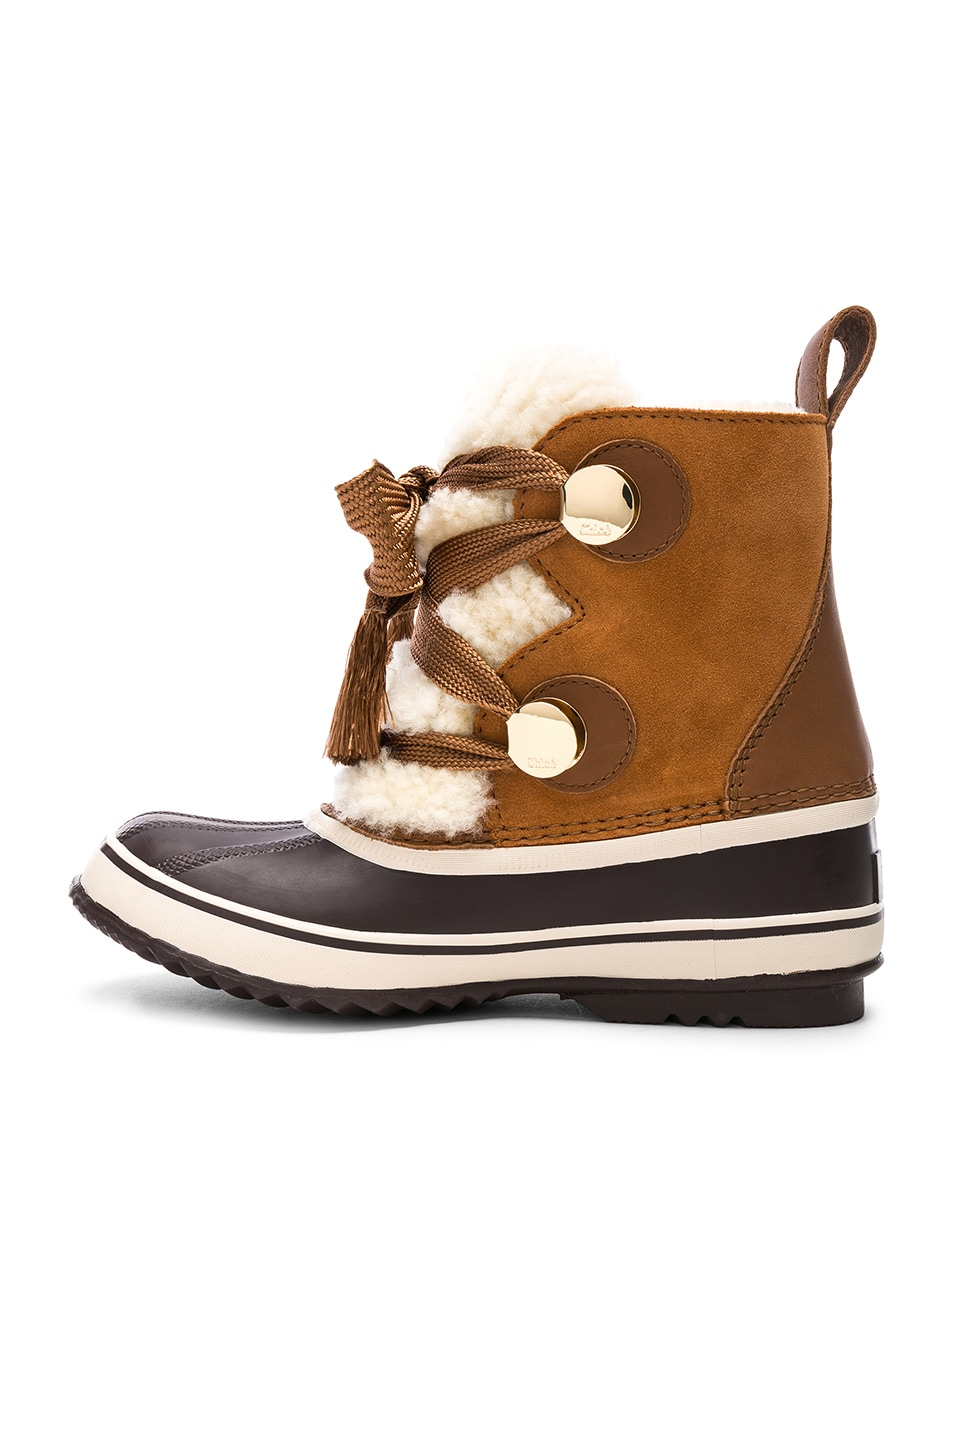 Chloé X Sorel Shearling & Suede Hiking Boots in . bE9VTcR